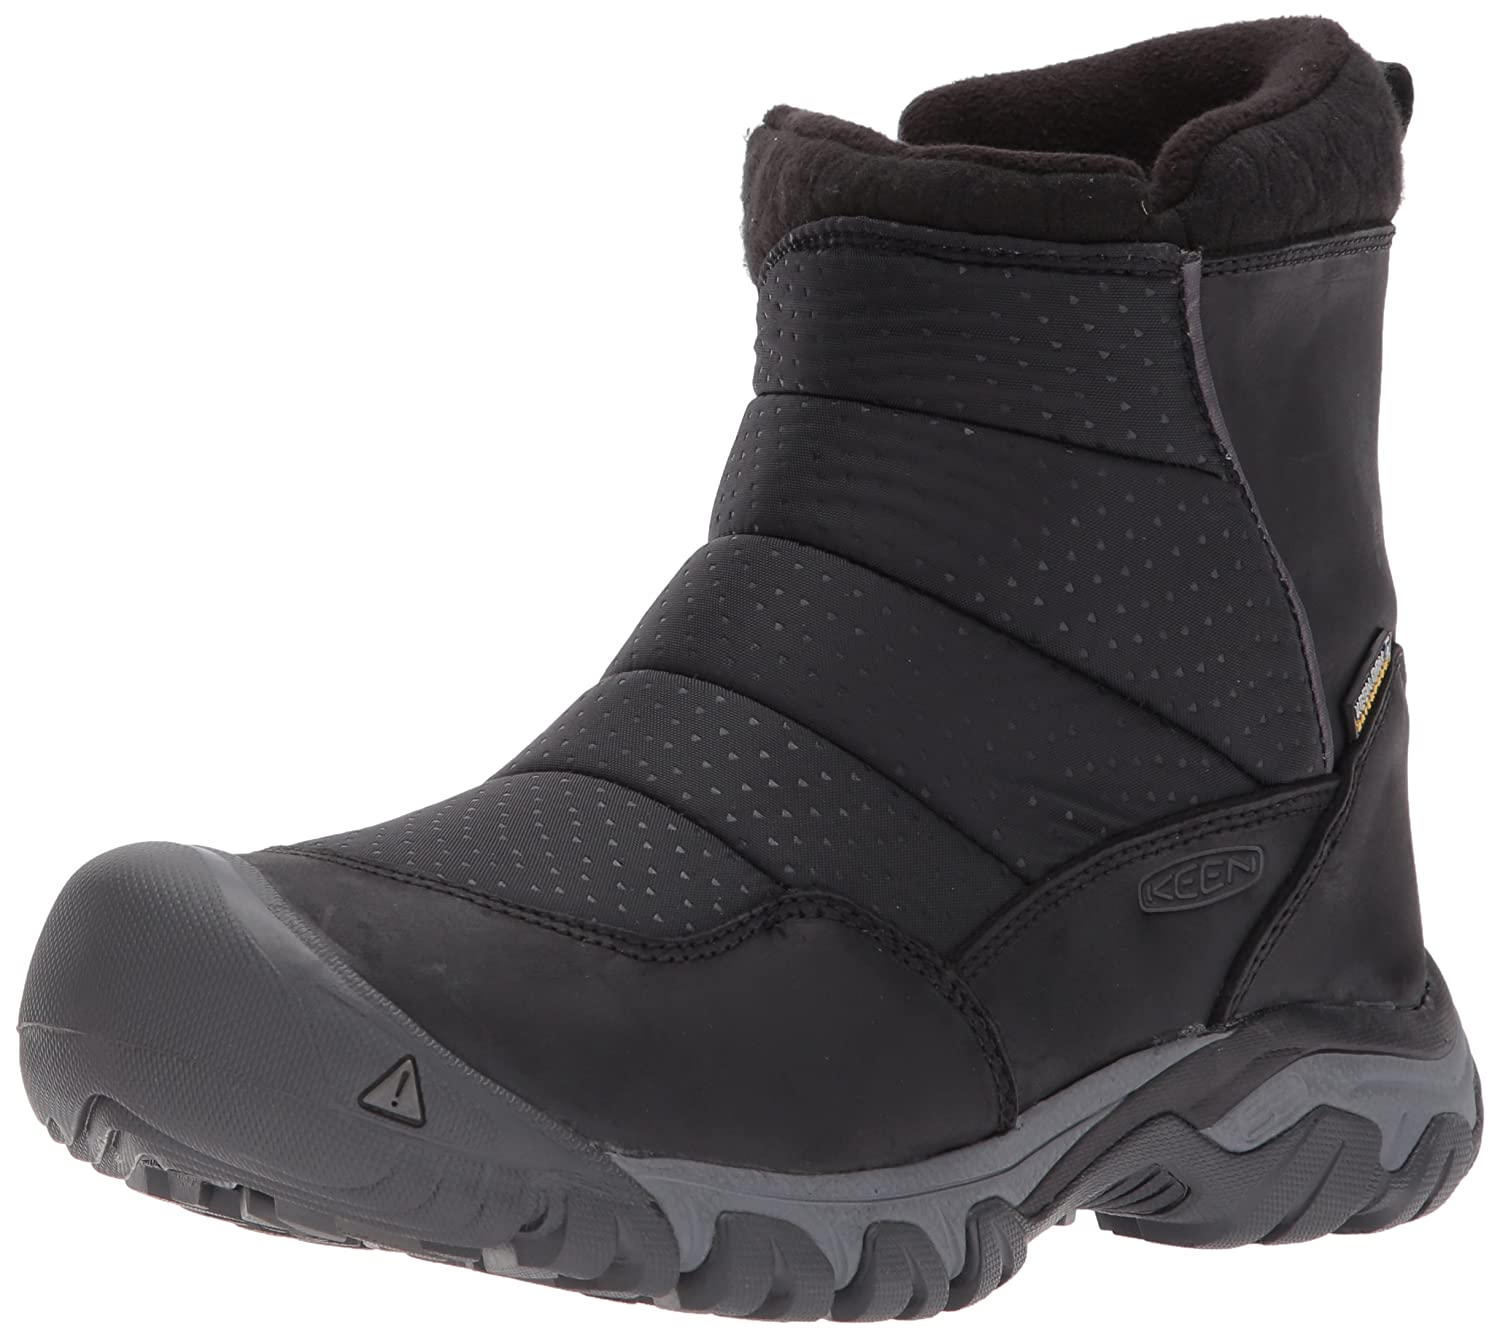 KEEN Women's Hoodoo III Low Zip-w Snow Boot B01N76O7LB 5 B(M) US|Black/Magnet